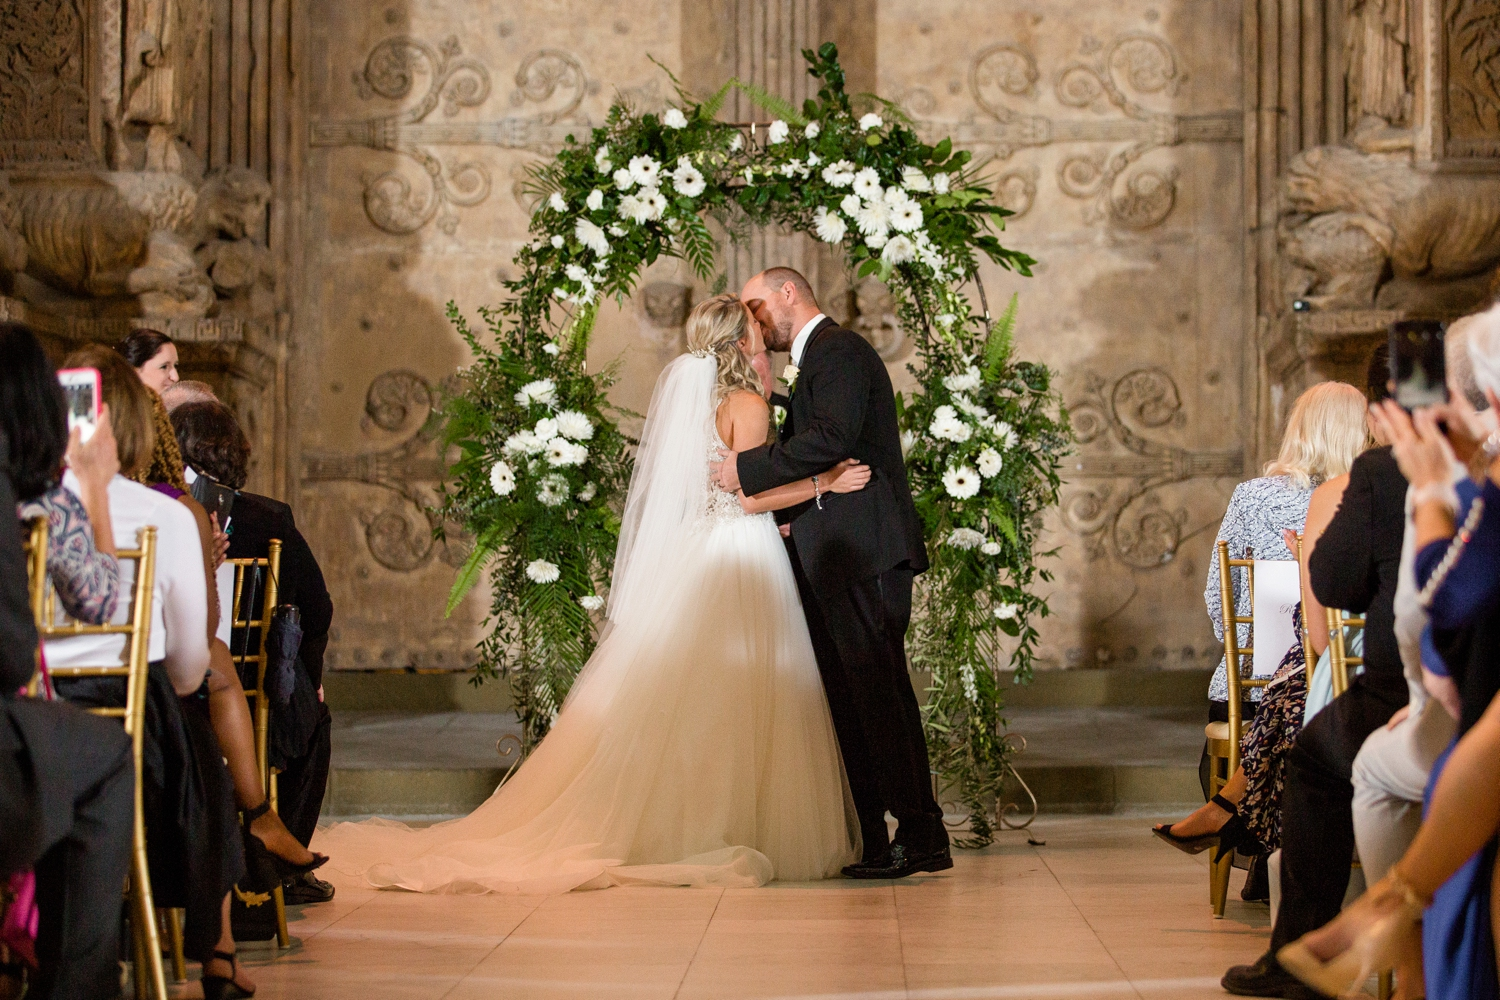 pittsburgh wedding photographer, carnegie museum of natural history wedding photos, carnegie museum wedding pictures, pittsburgh wedding venues, pittsburgh wedding photos